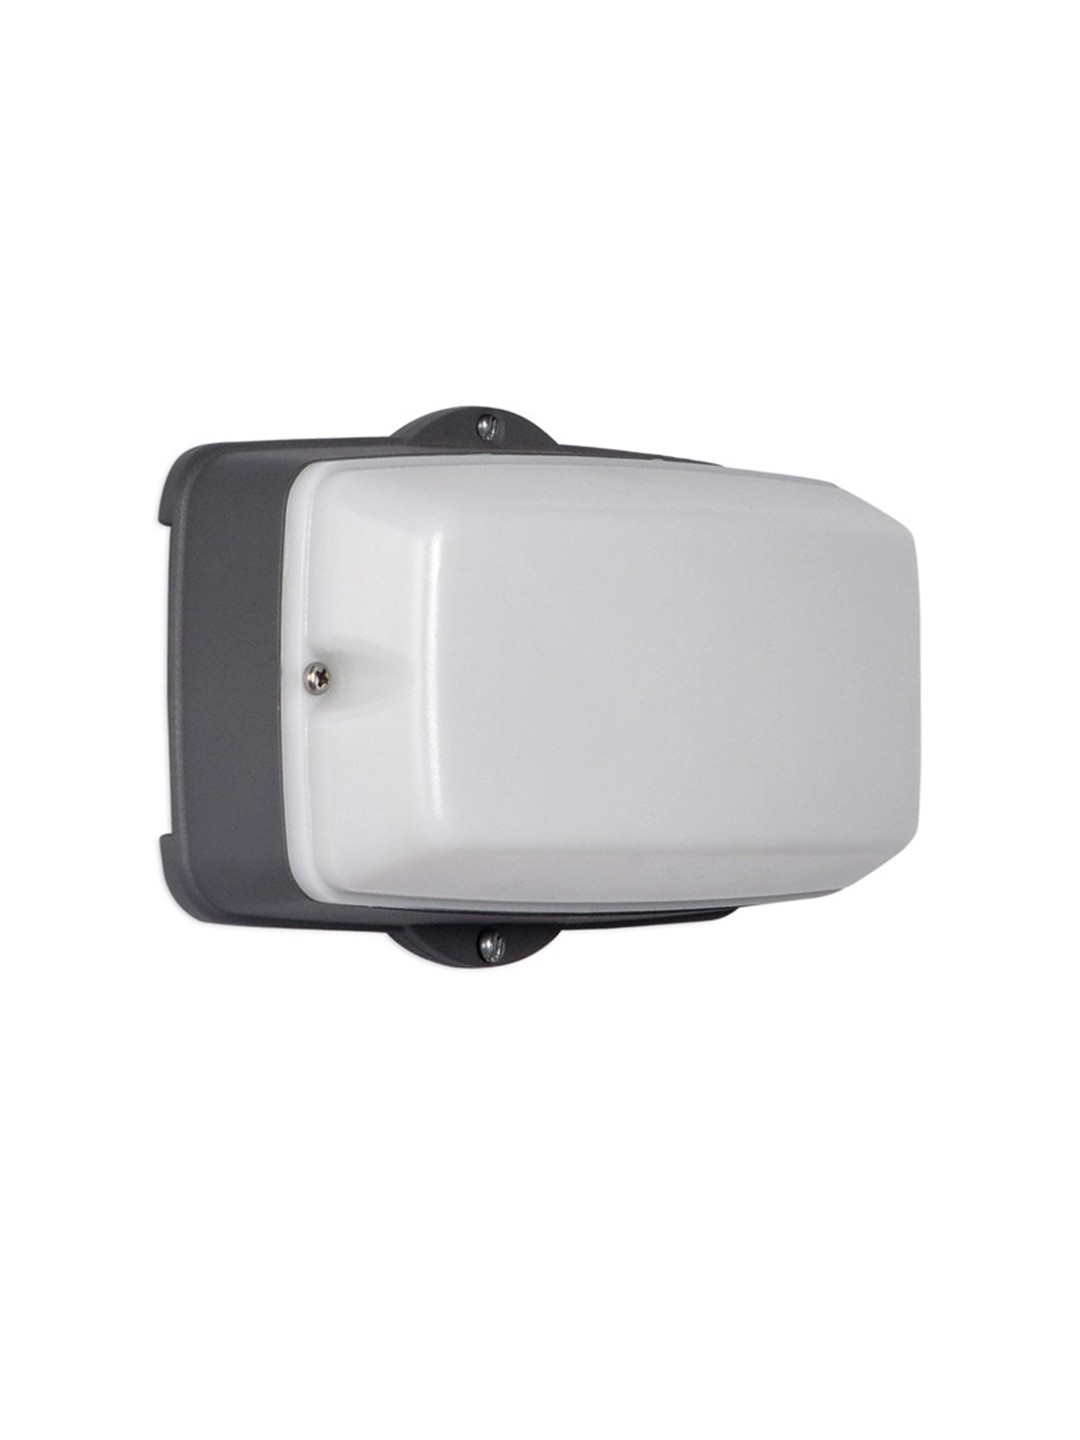 LED Bulkhead OutdoorLight in Yellow Light